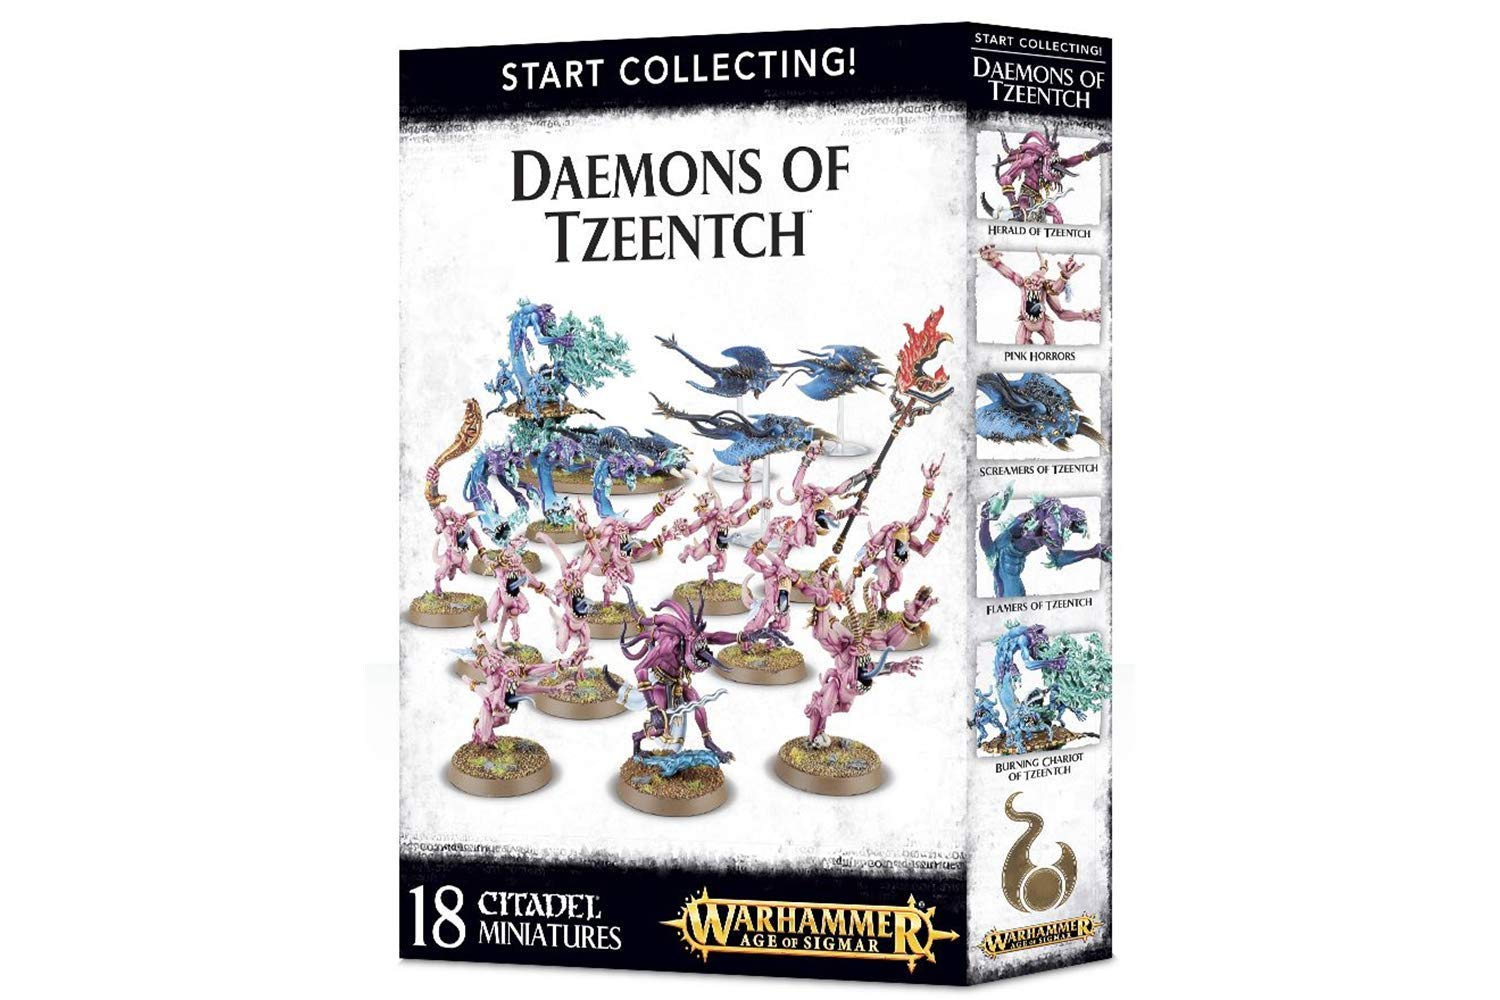 Games Workshop 99129915043'' Start Collecting Daemons of Tzeentch Miniature by Games Workshop (Image #1)